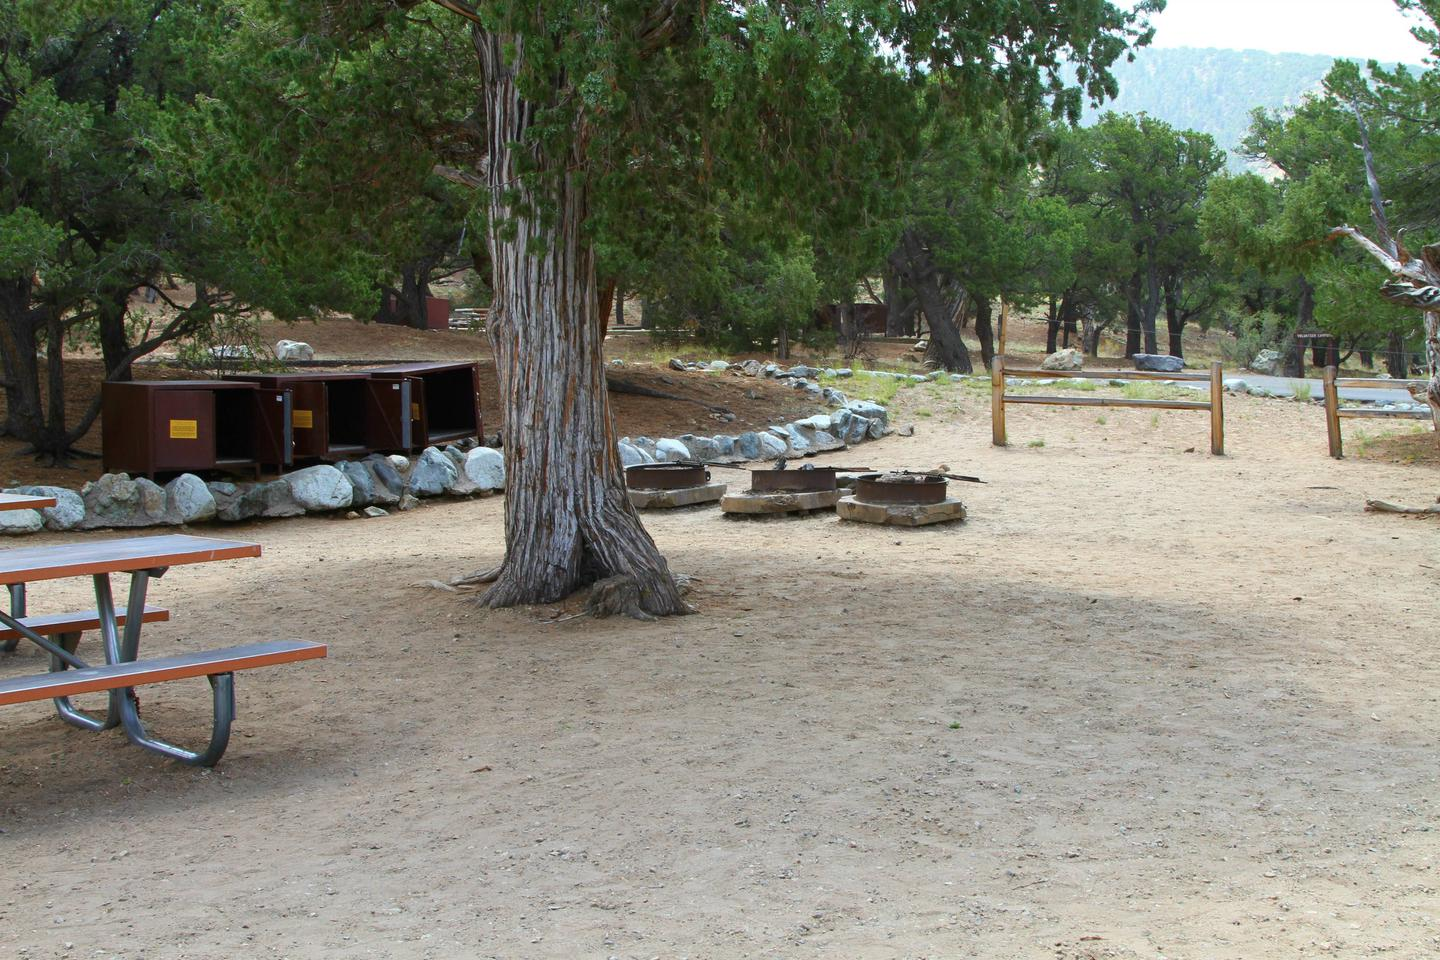 Group Site A, Pinon Flats Campground